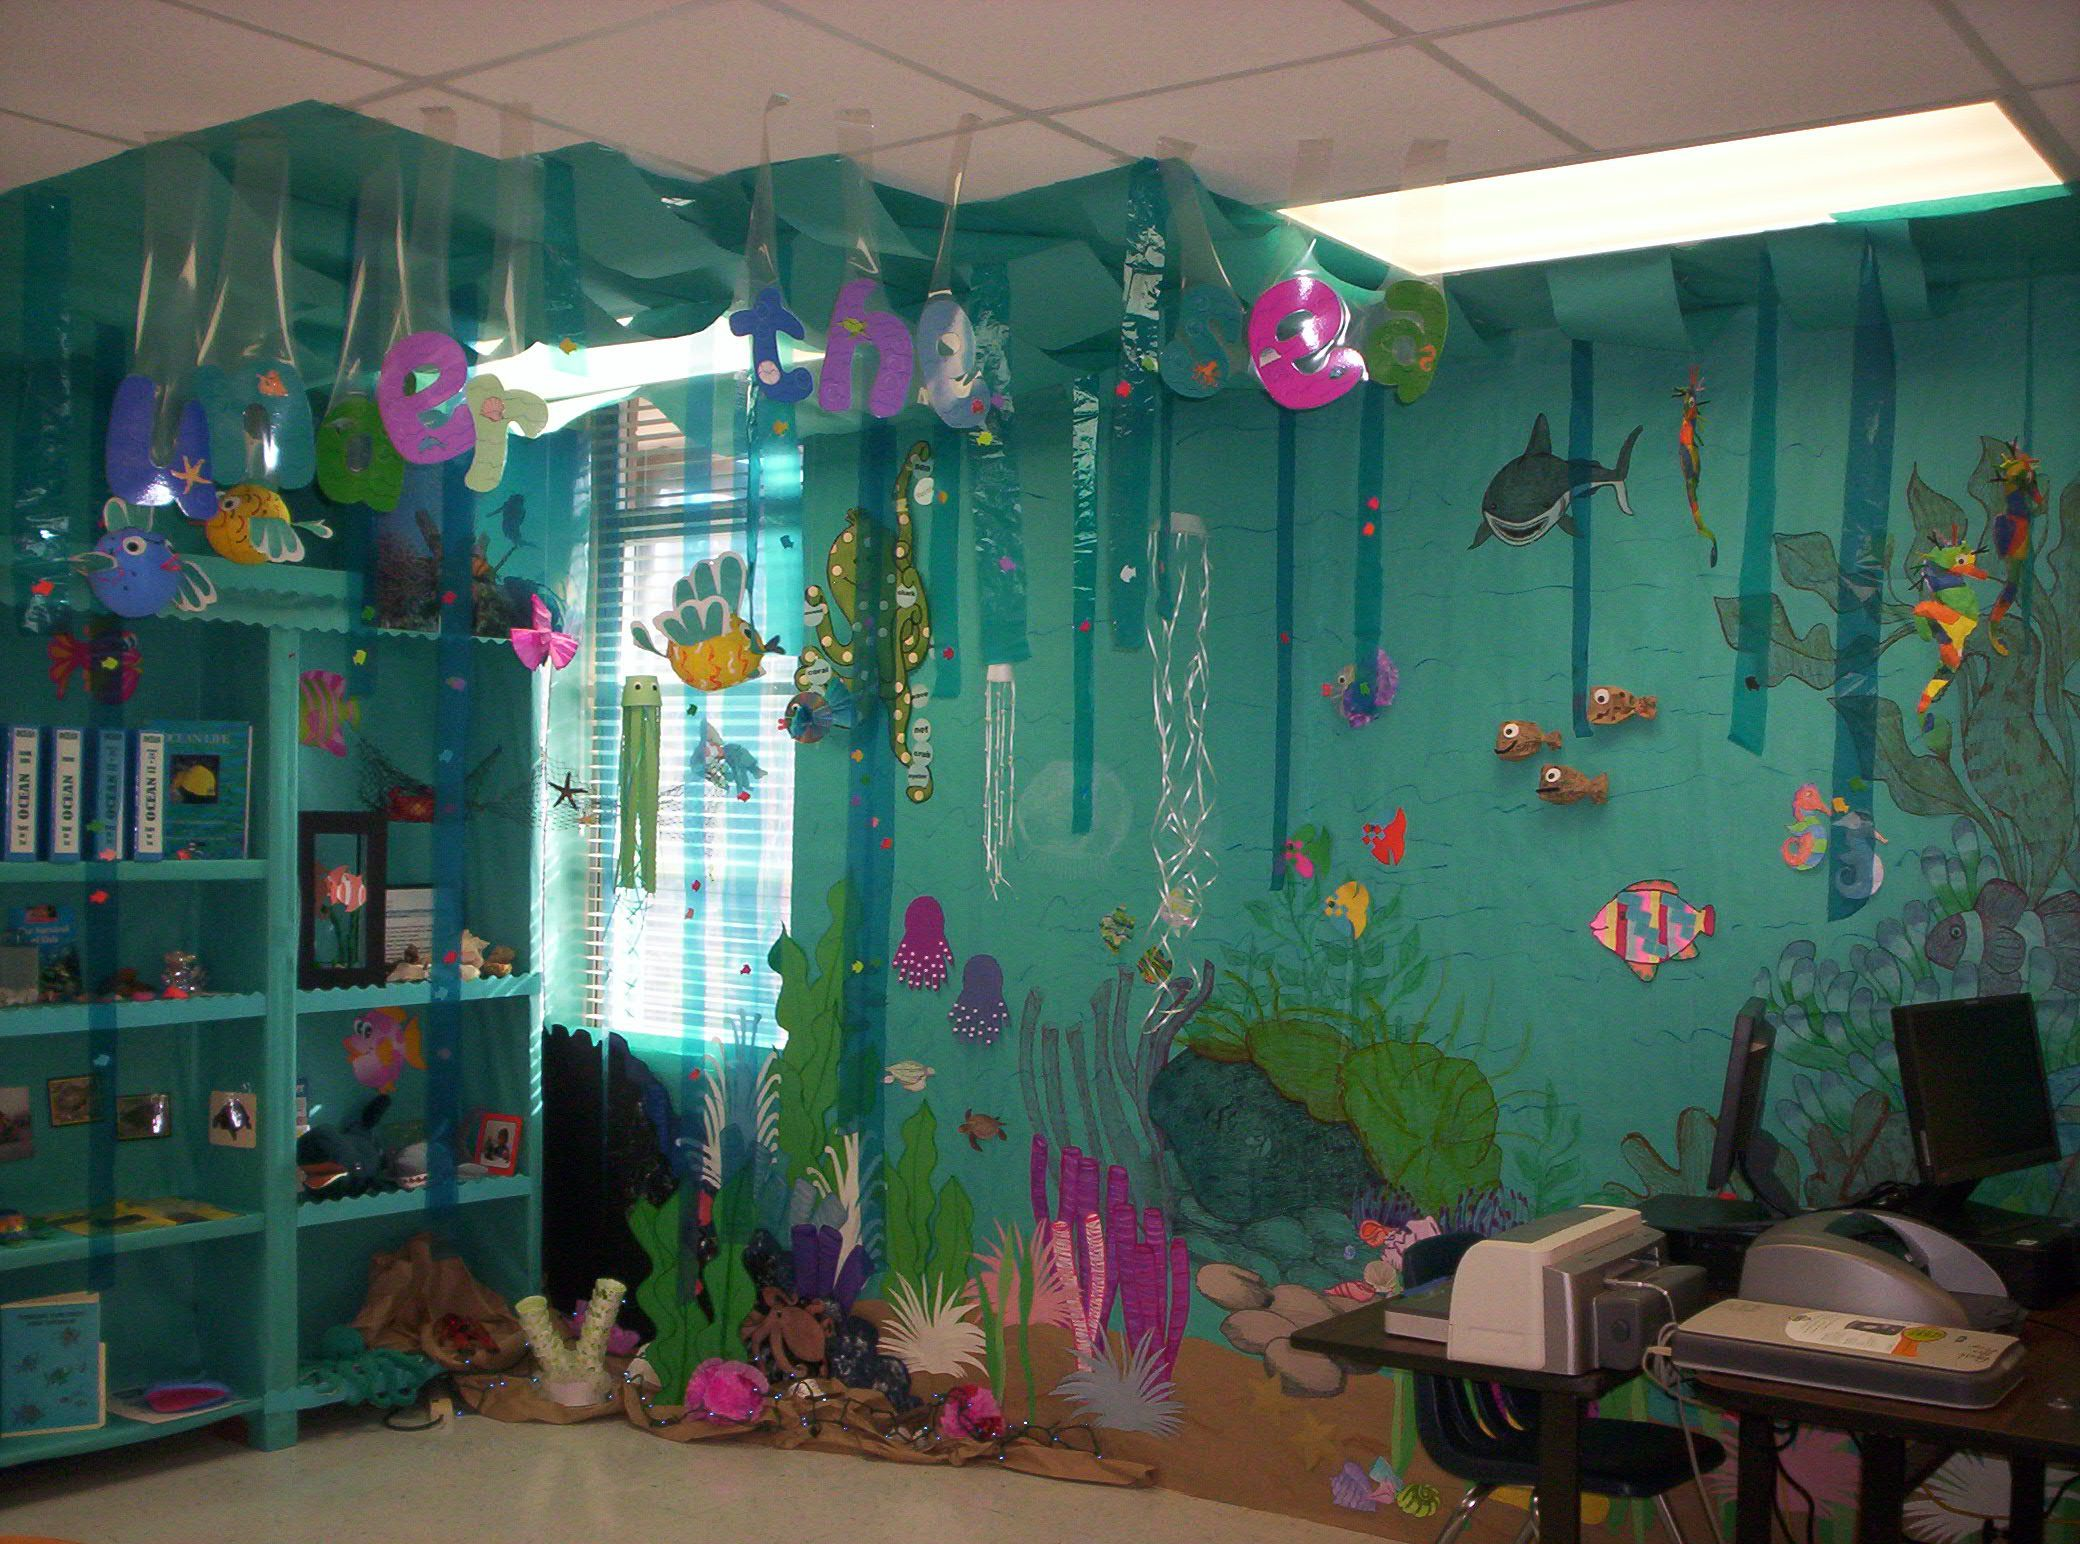 Classroom Party Ideas ~ Under the sea classroom theme ideas